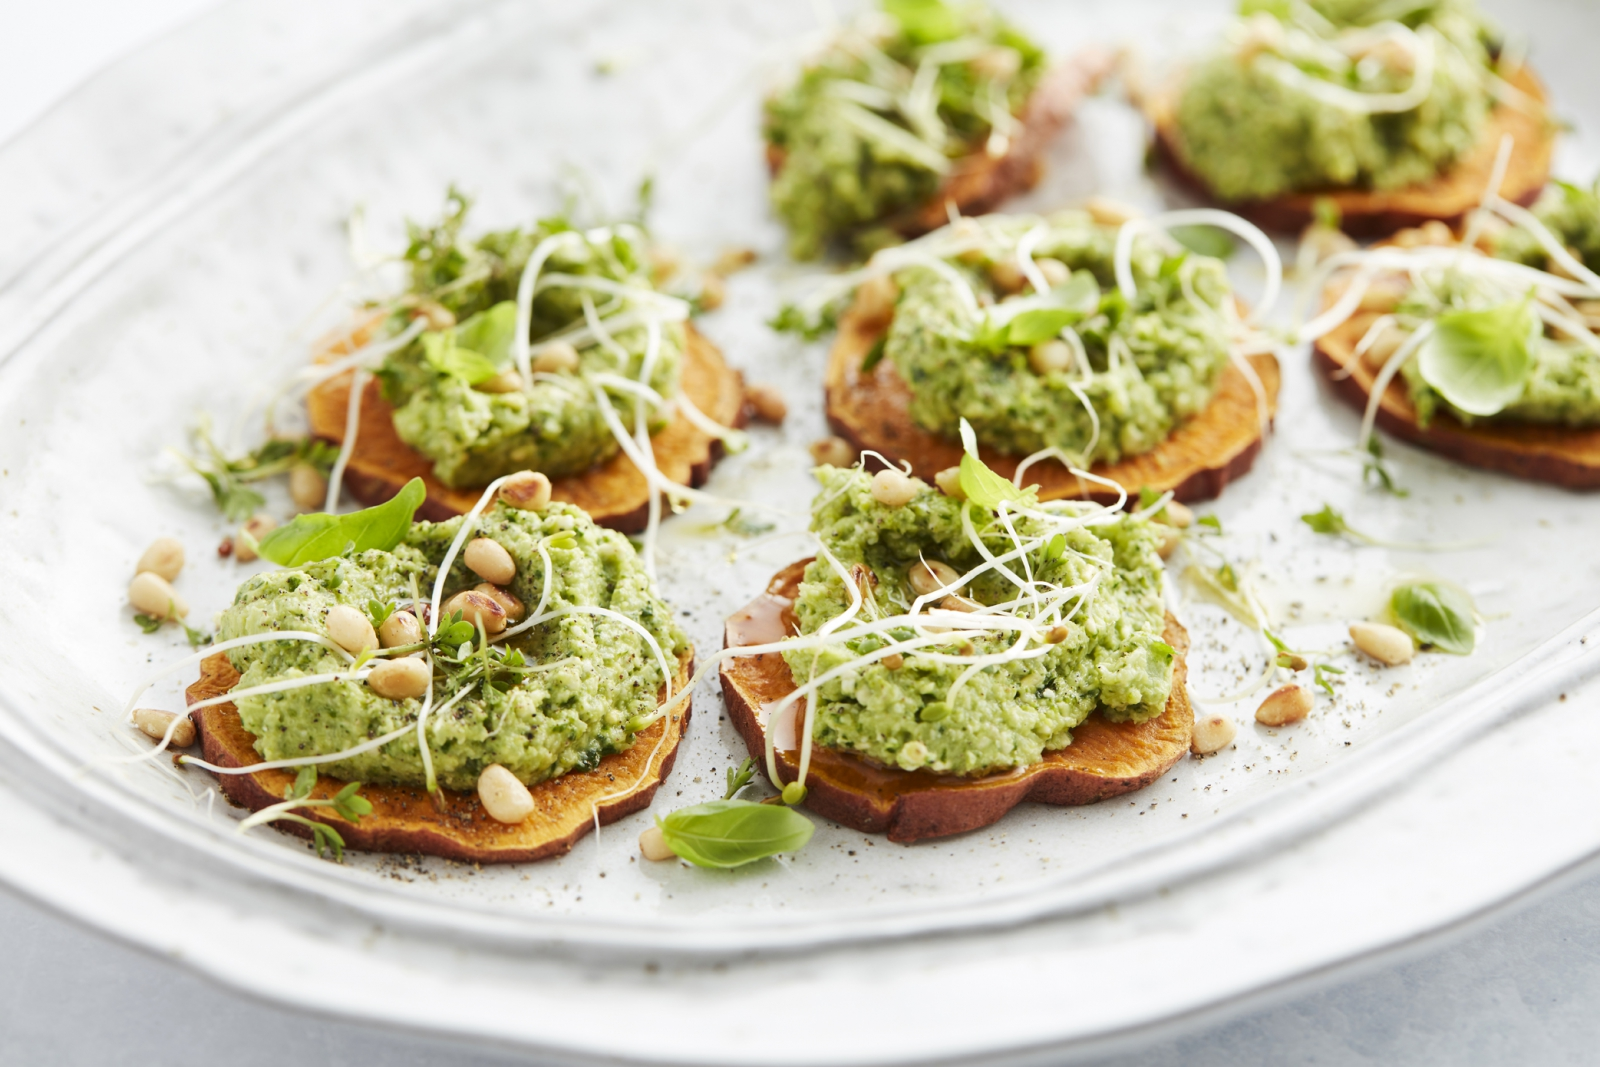 Toast van Zoete Aardappel met Broccolipesto - Vegan Keto Recept - Start to Keto eBook